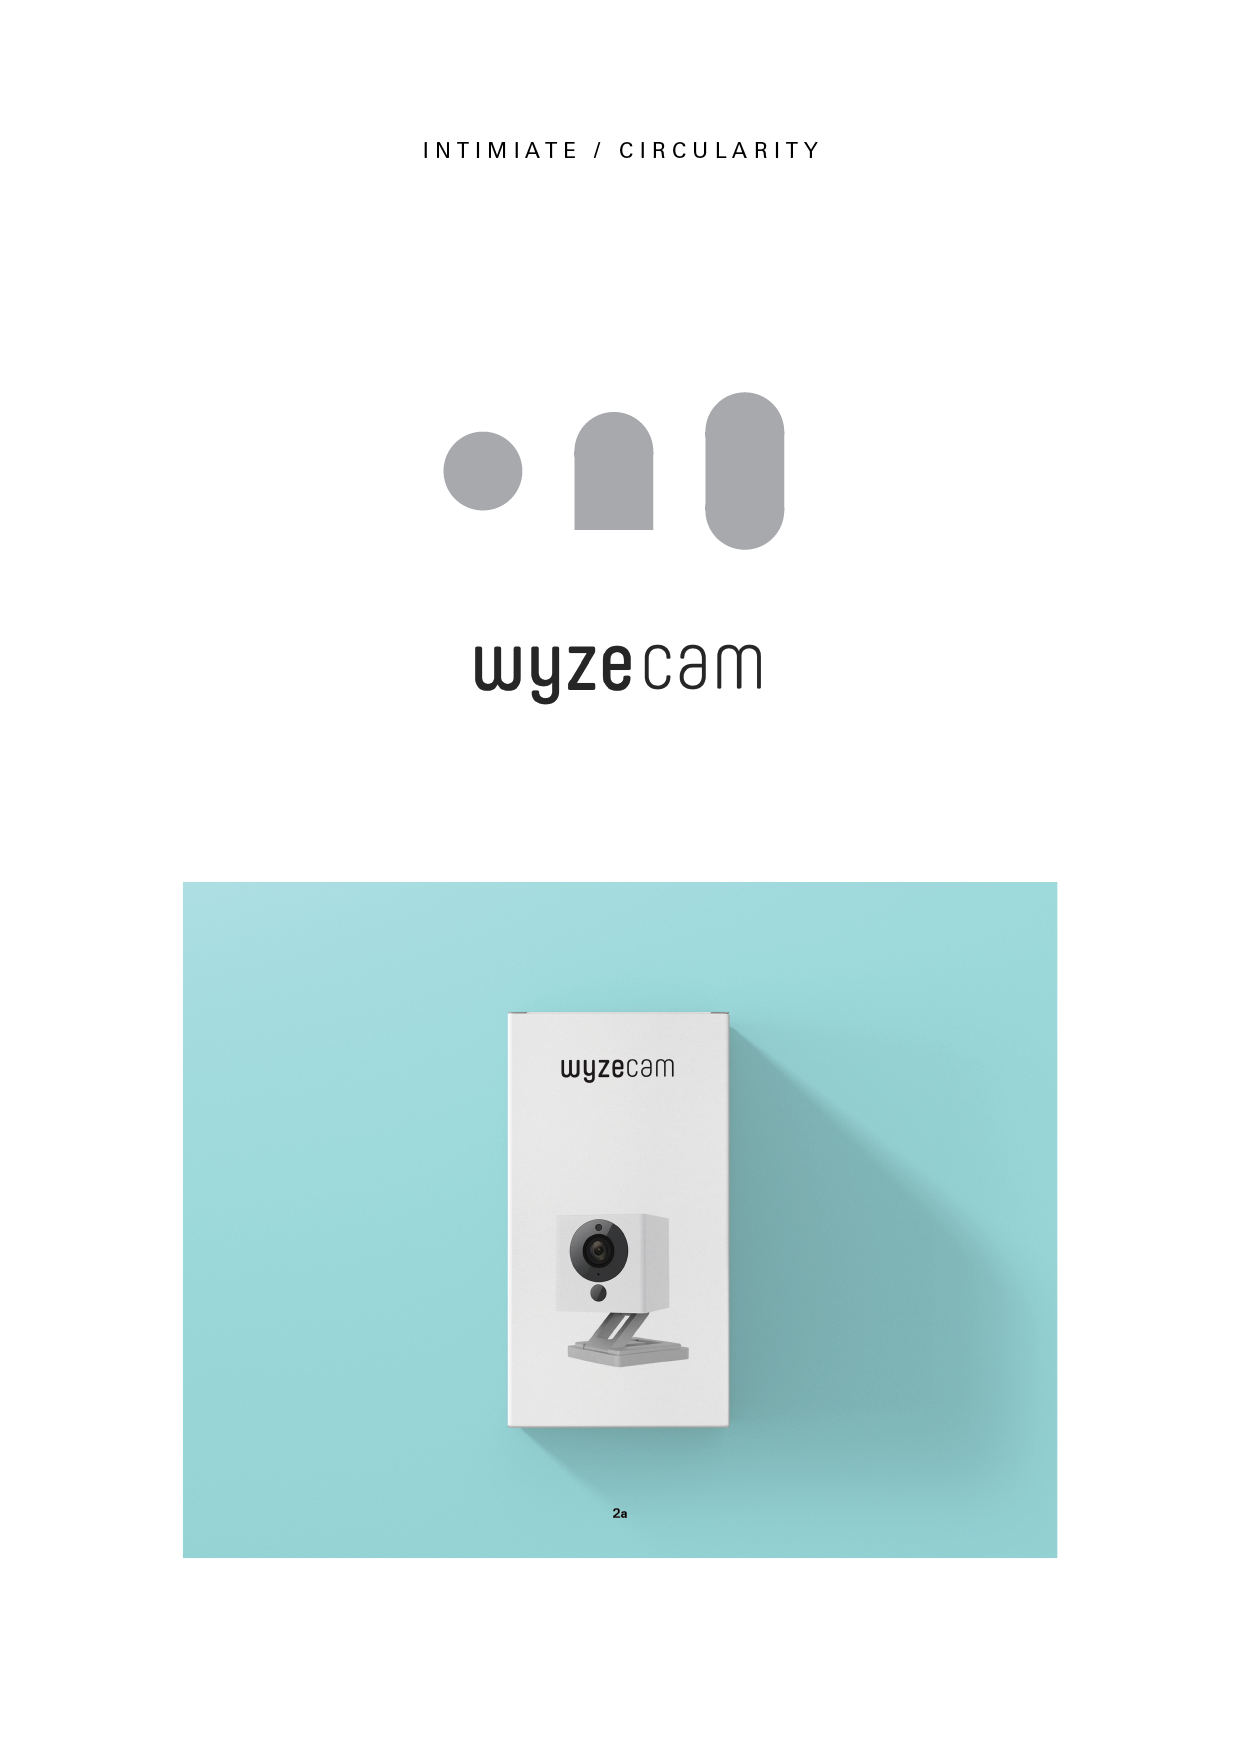 Wyze_direction2.png